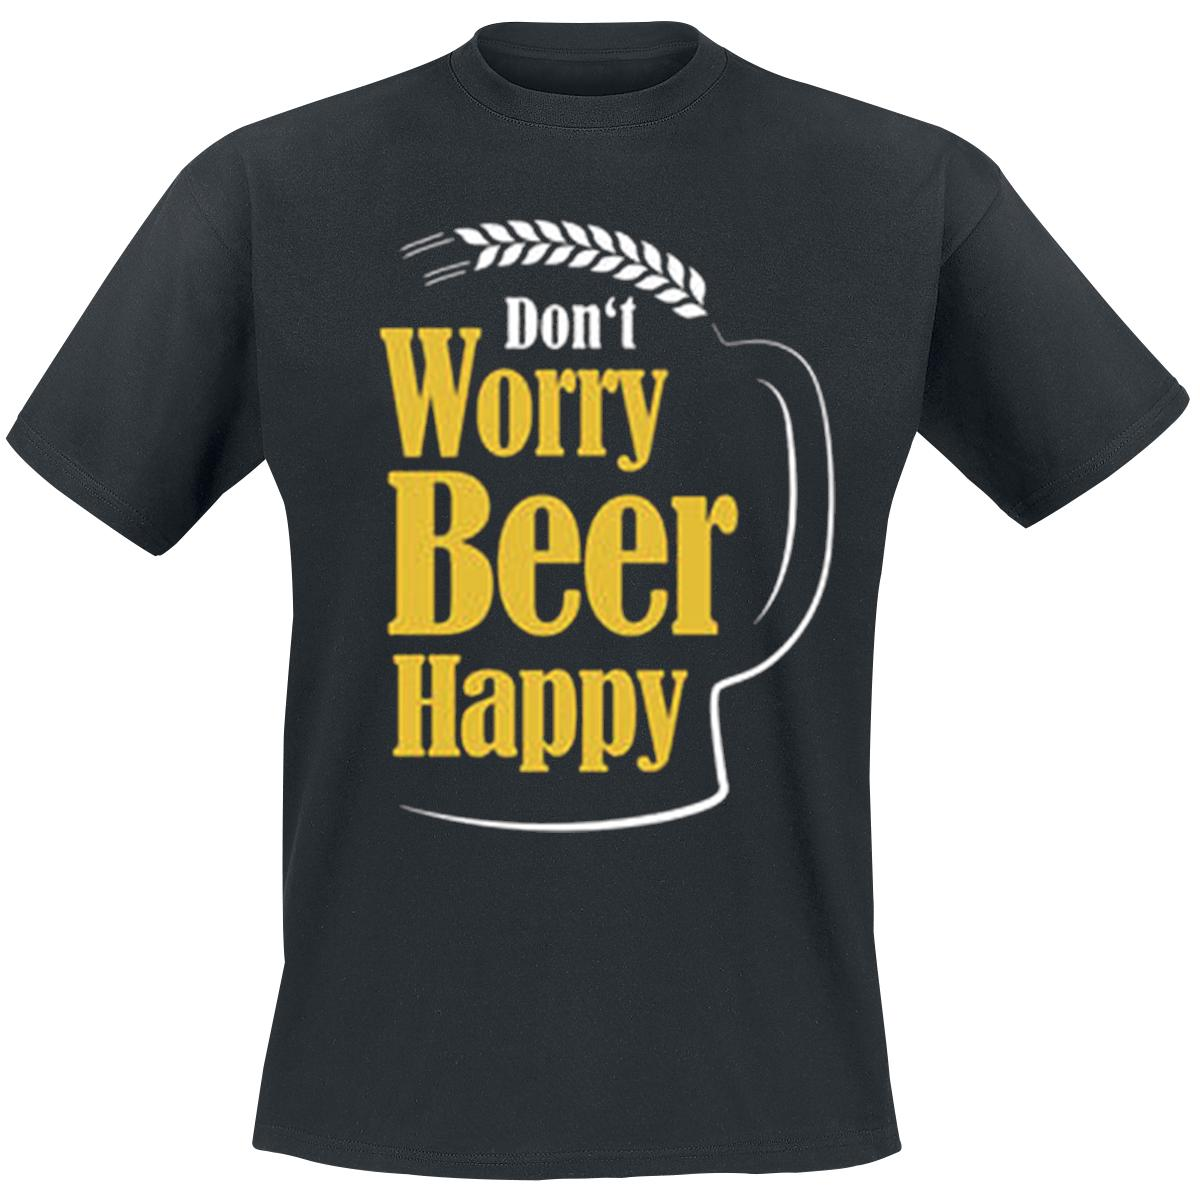 Don't Worry Beer Happy T-shirt Design